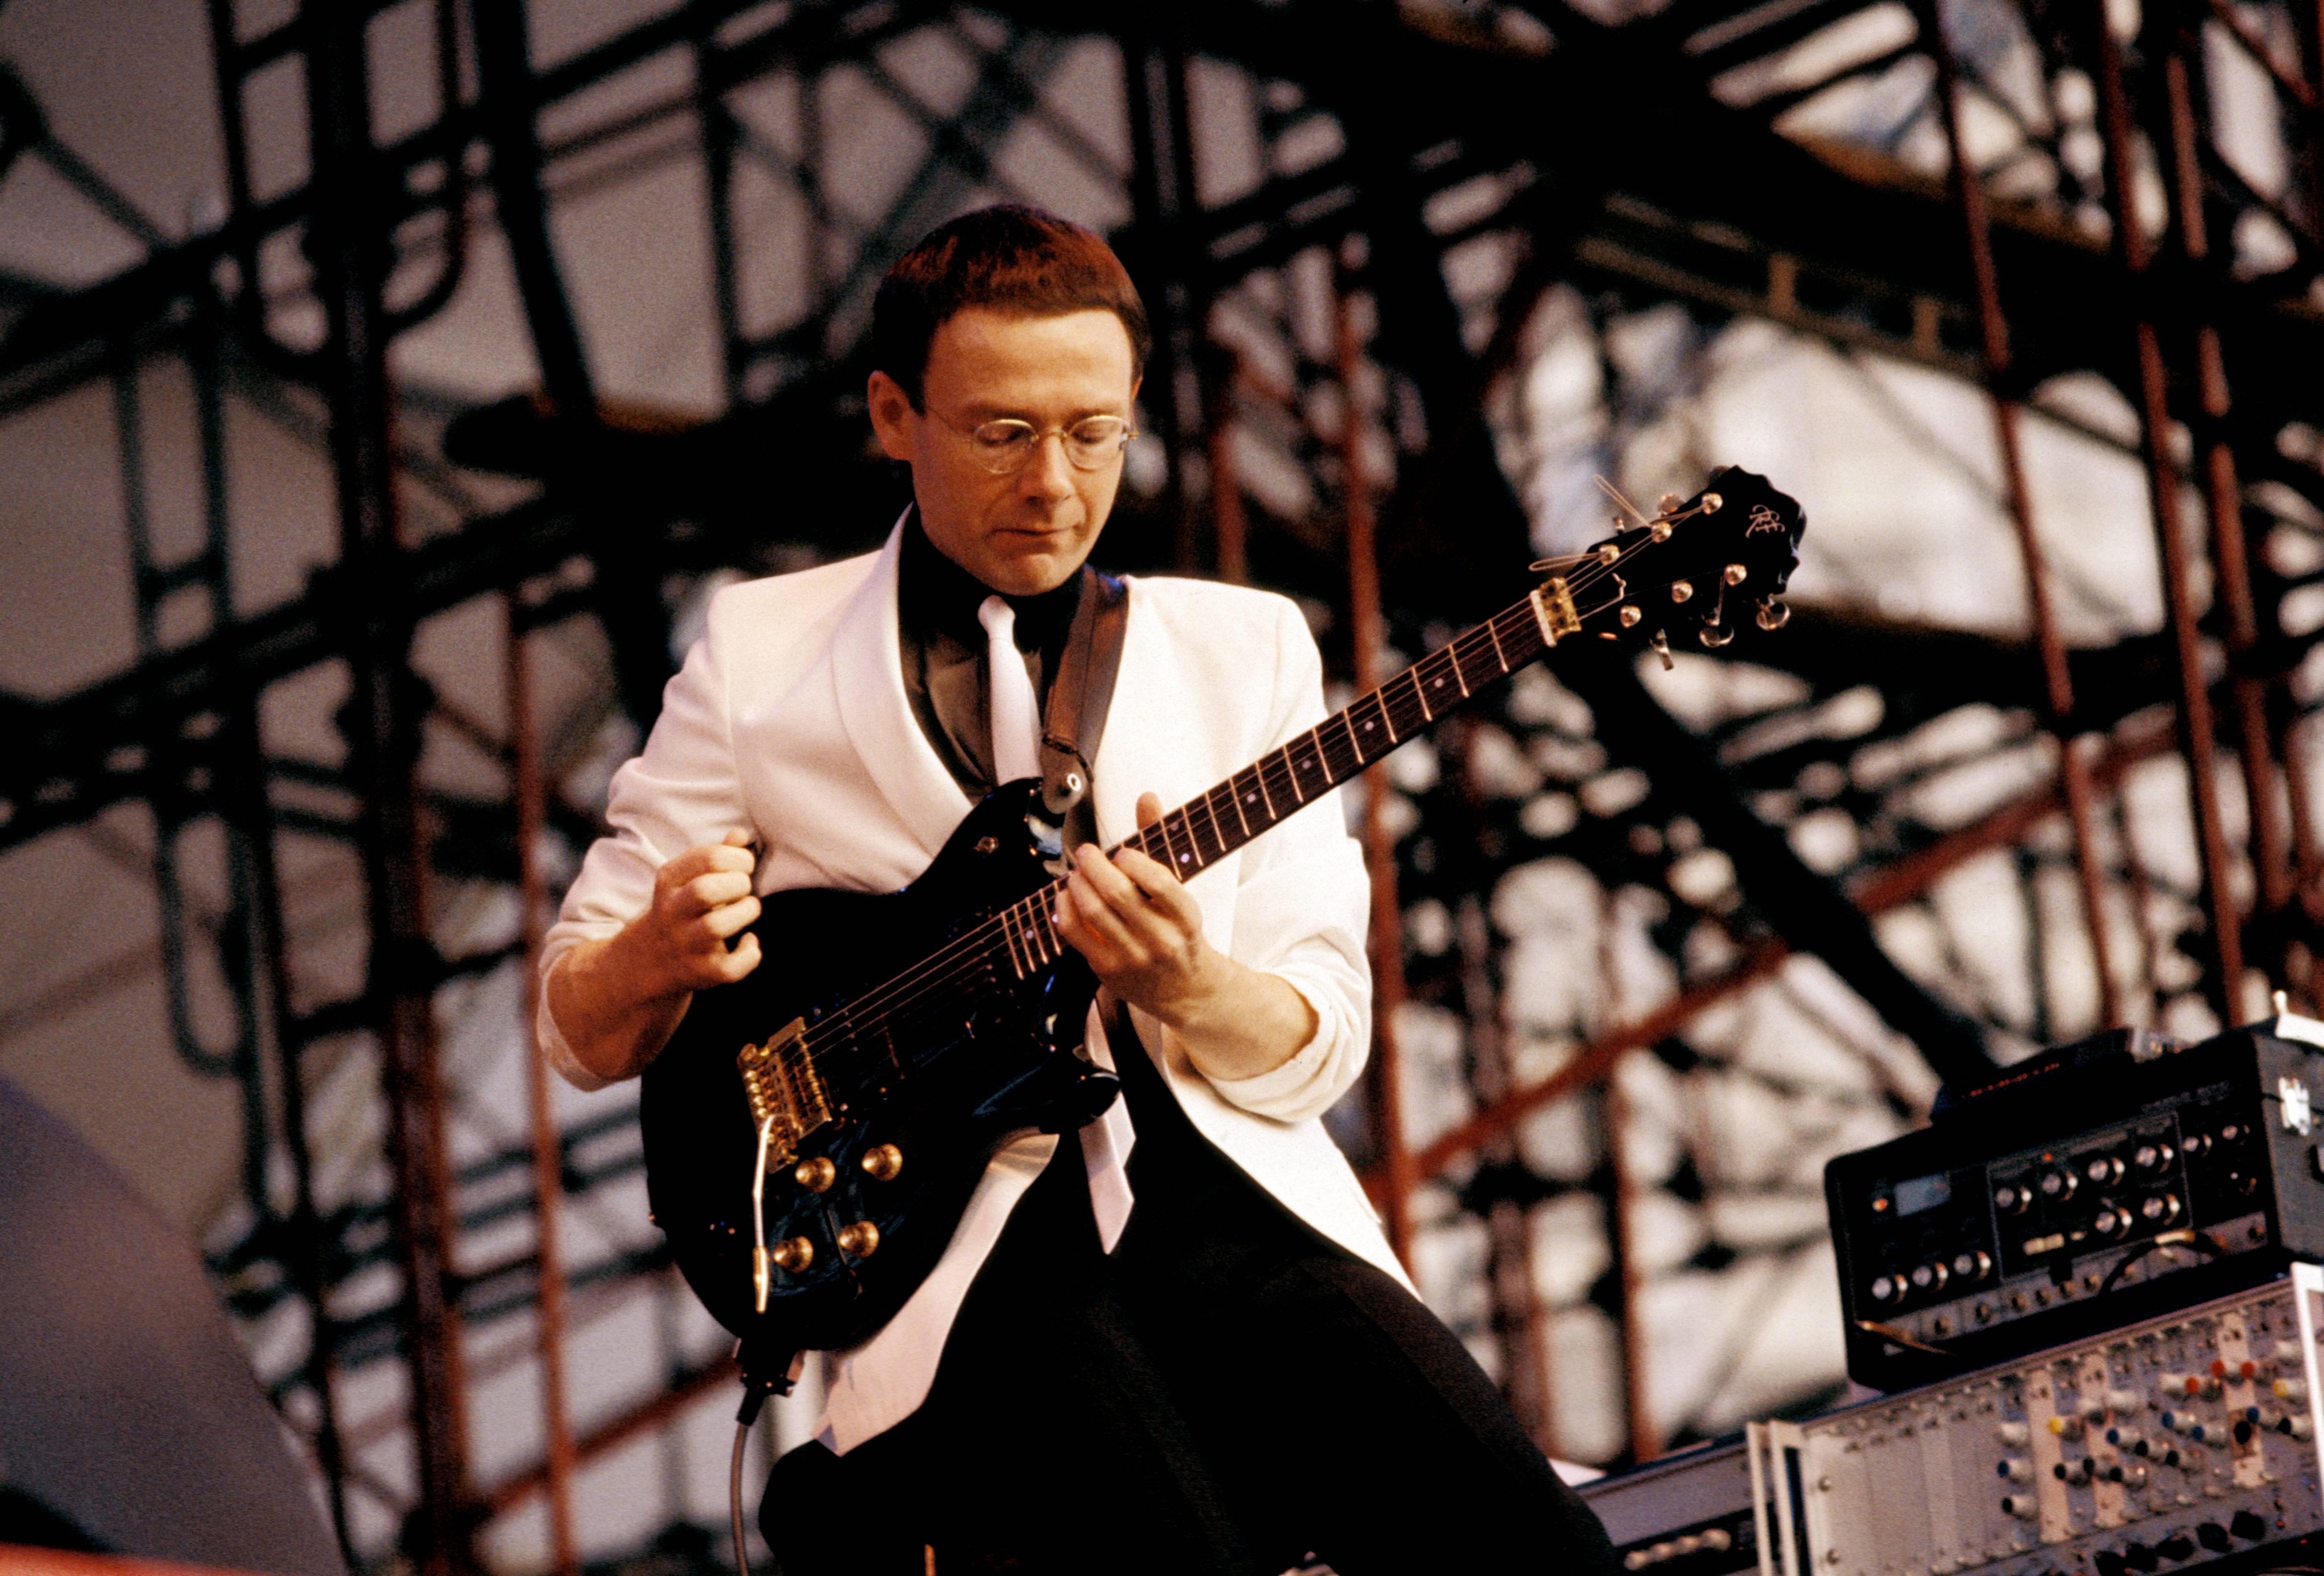 UNITED STATES - JANUARY 01:  Photo of Robert FRIPP and KING CRIMSON  (Photo by Ebet Roberts/Redferns)